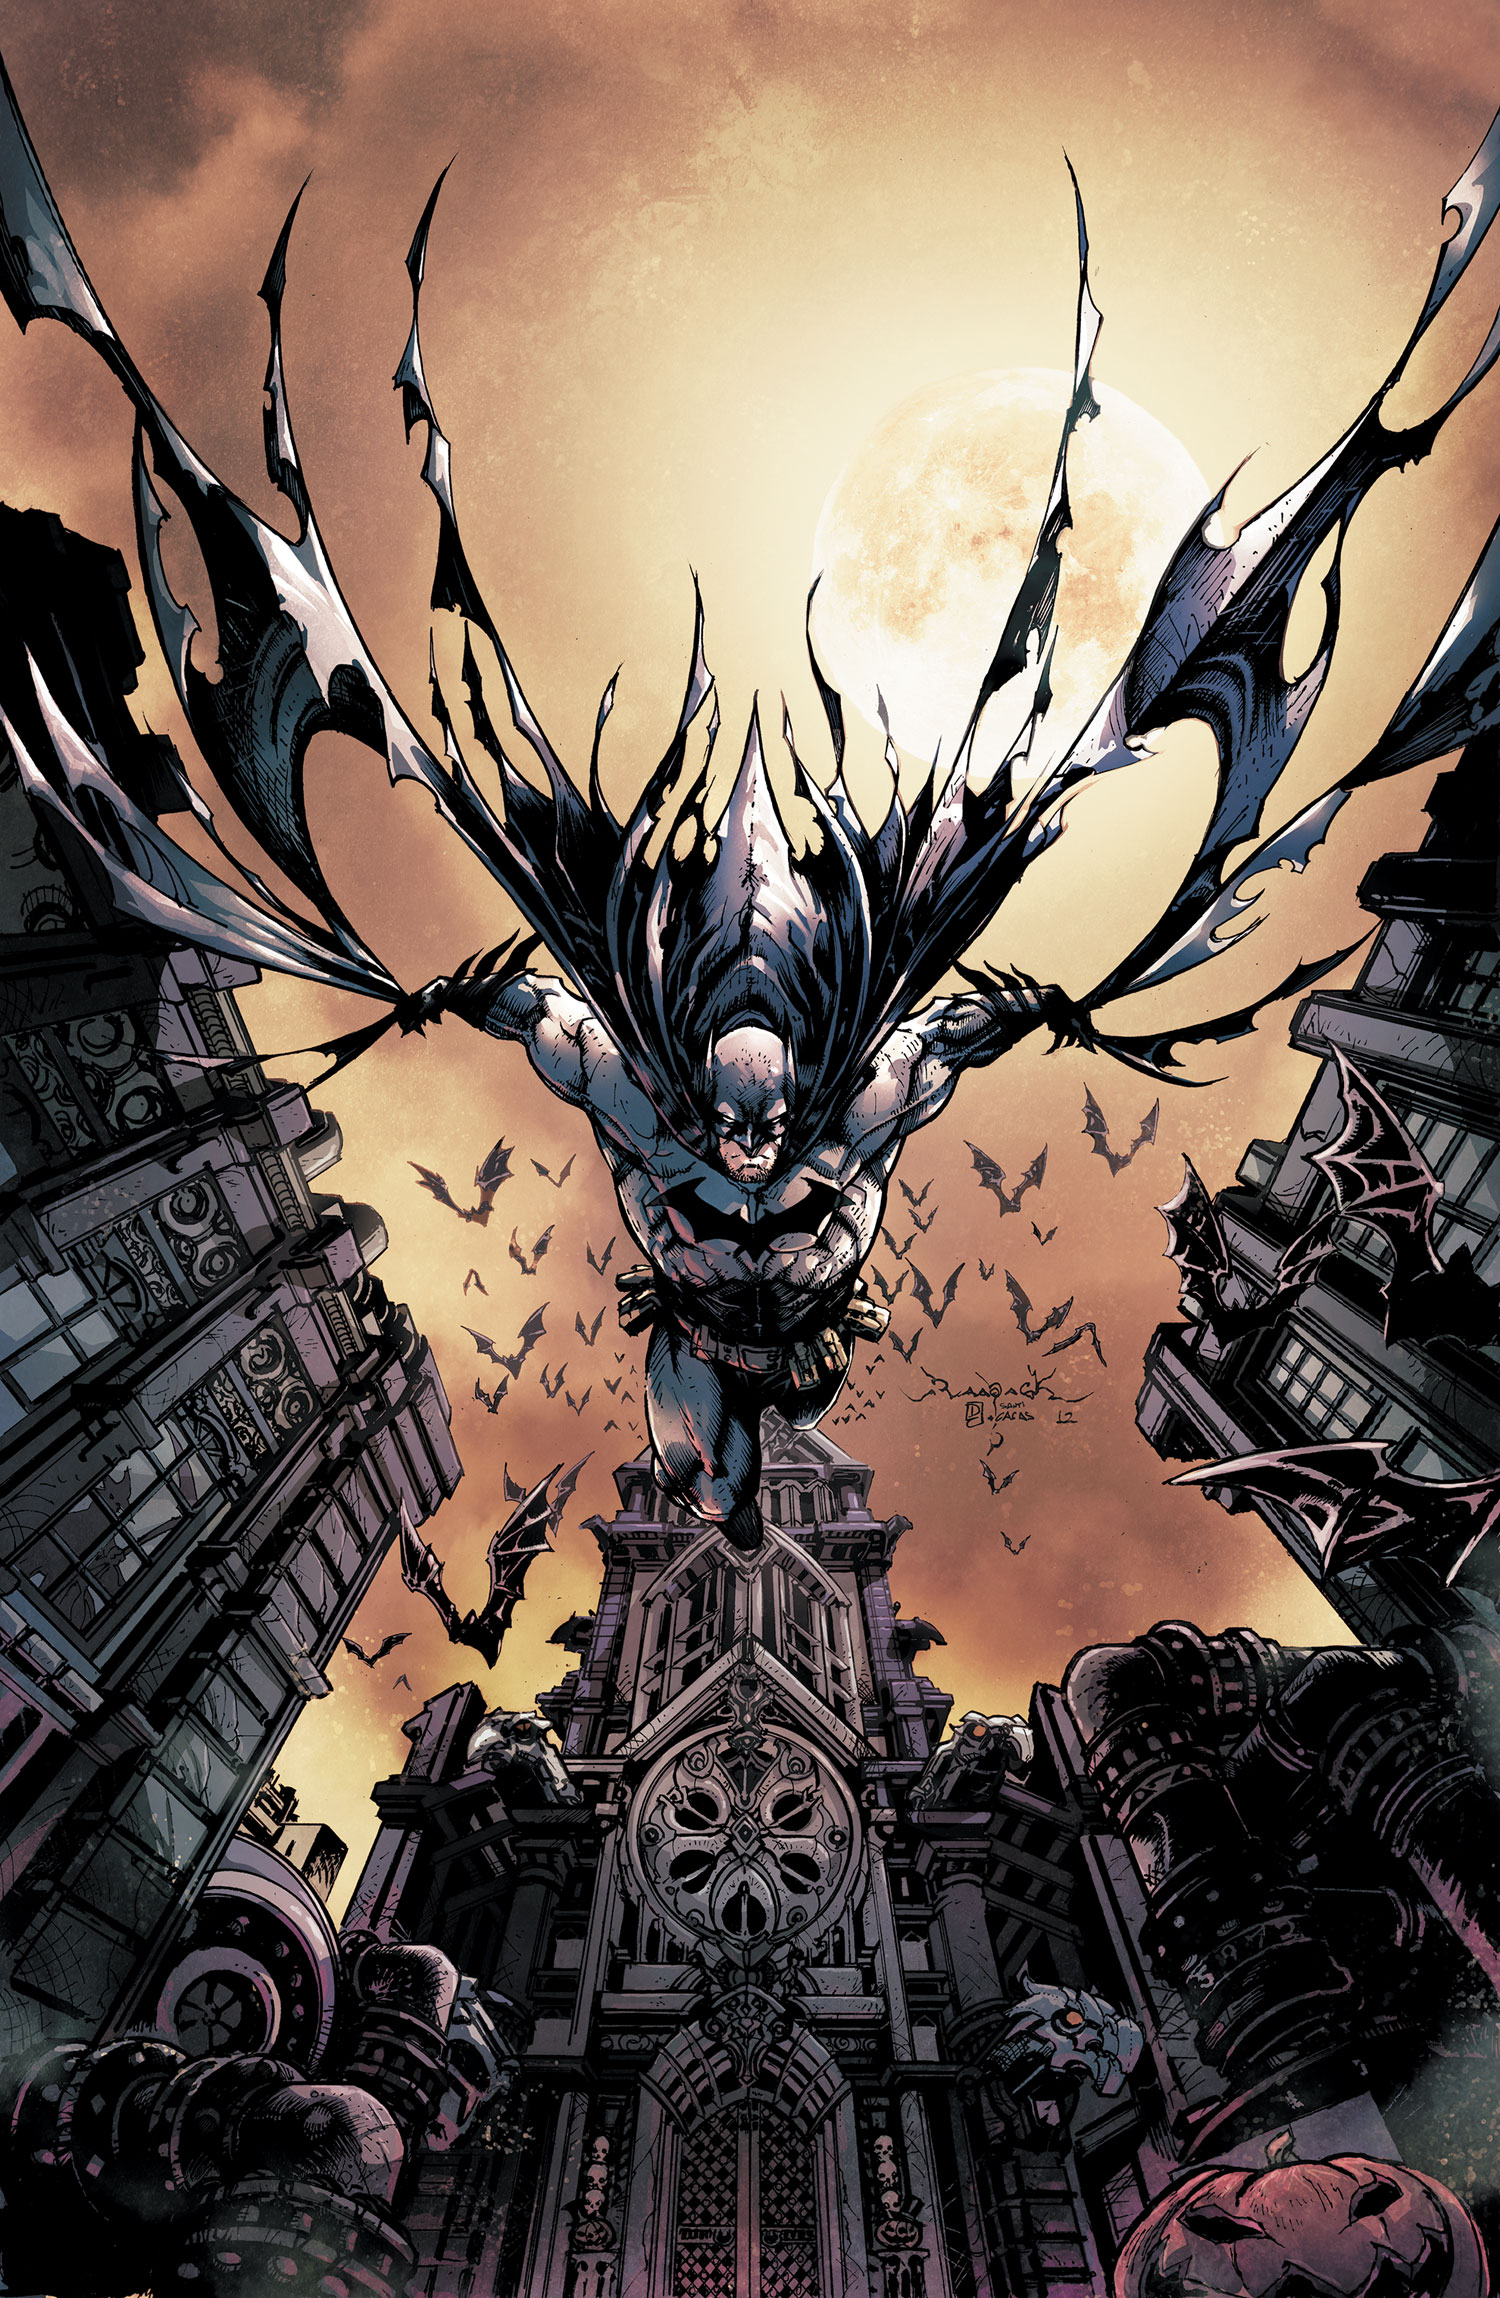 Legends Of The Dark Knight #4 by Jheremy Raapack